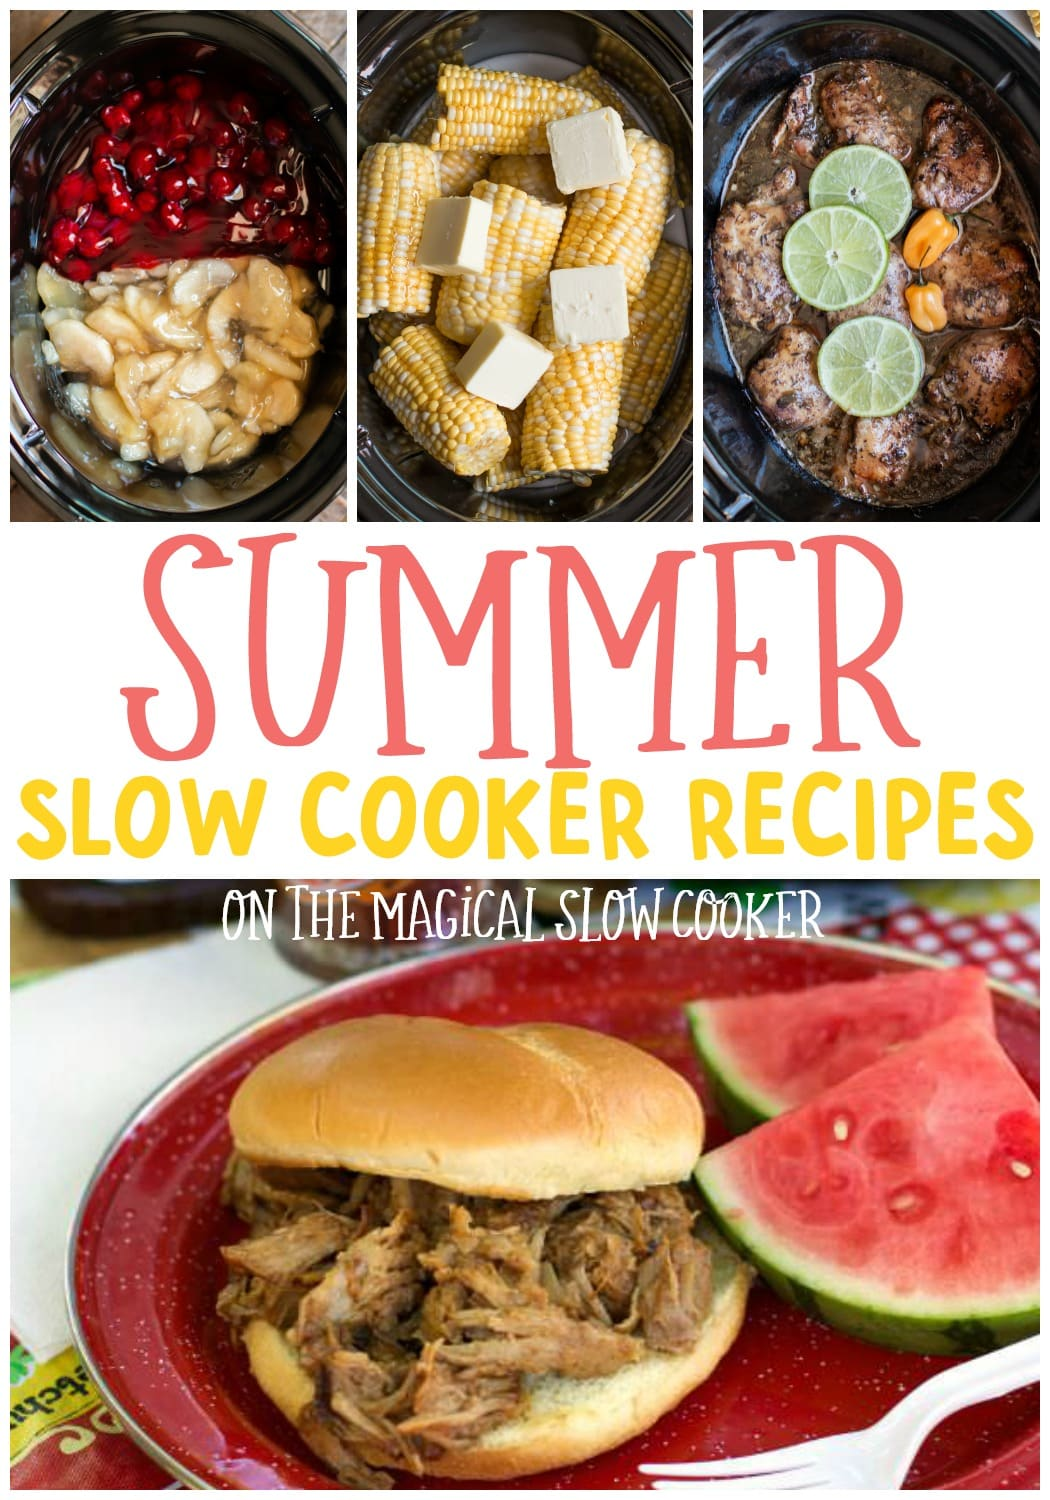 collage of summer recipes with text over lay that says: Summer Slow Cooker Recipes